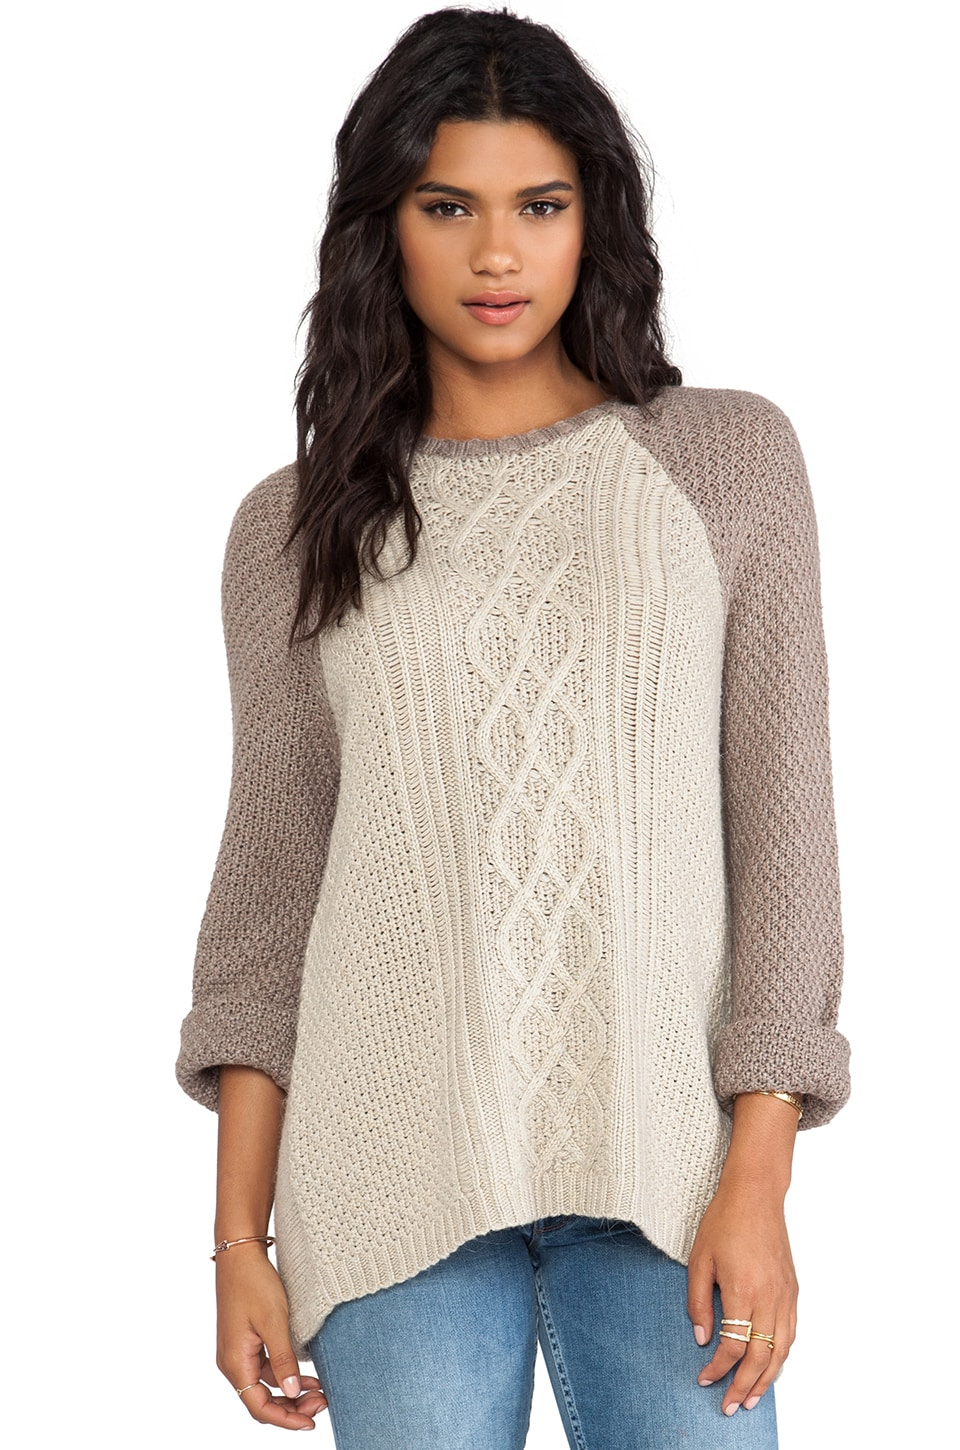 HEARTLOOM Sand Pull Over Sweater in Sand